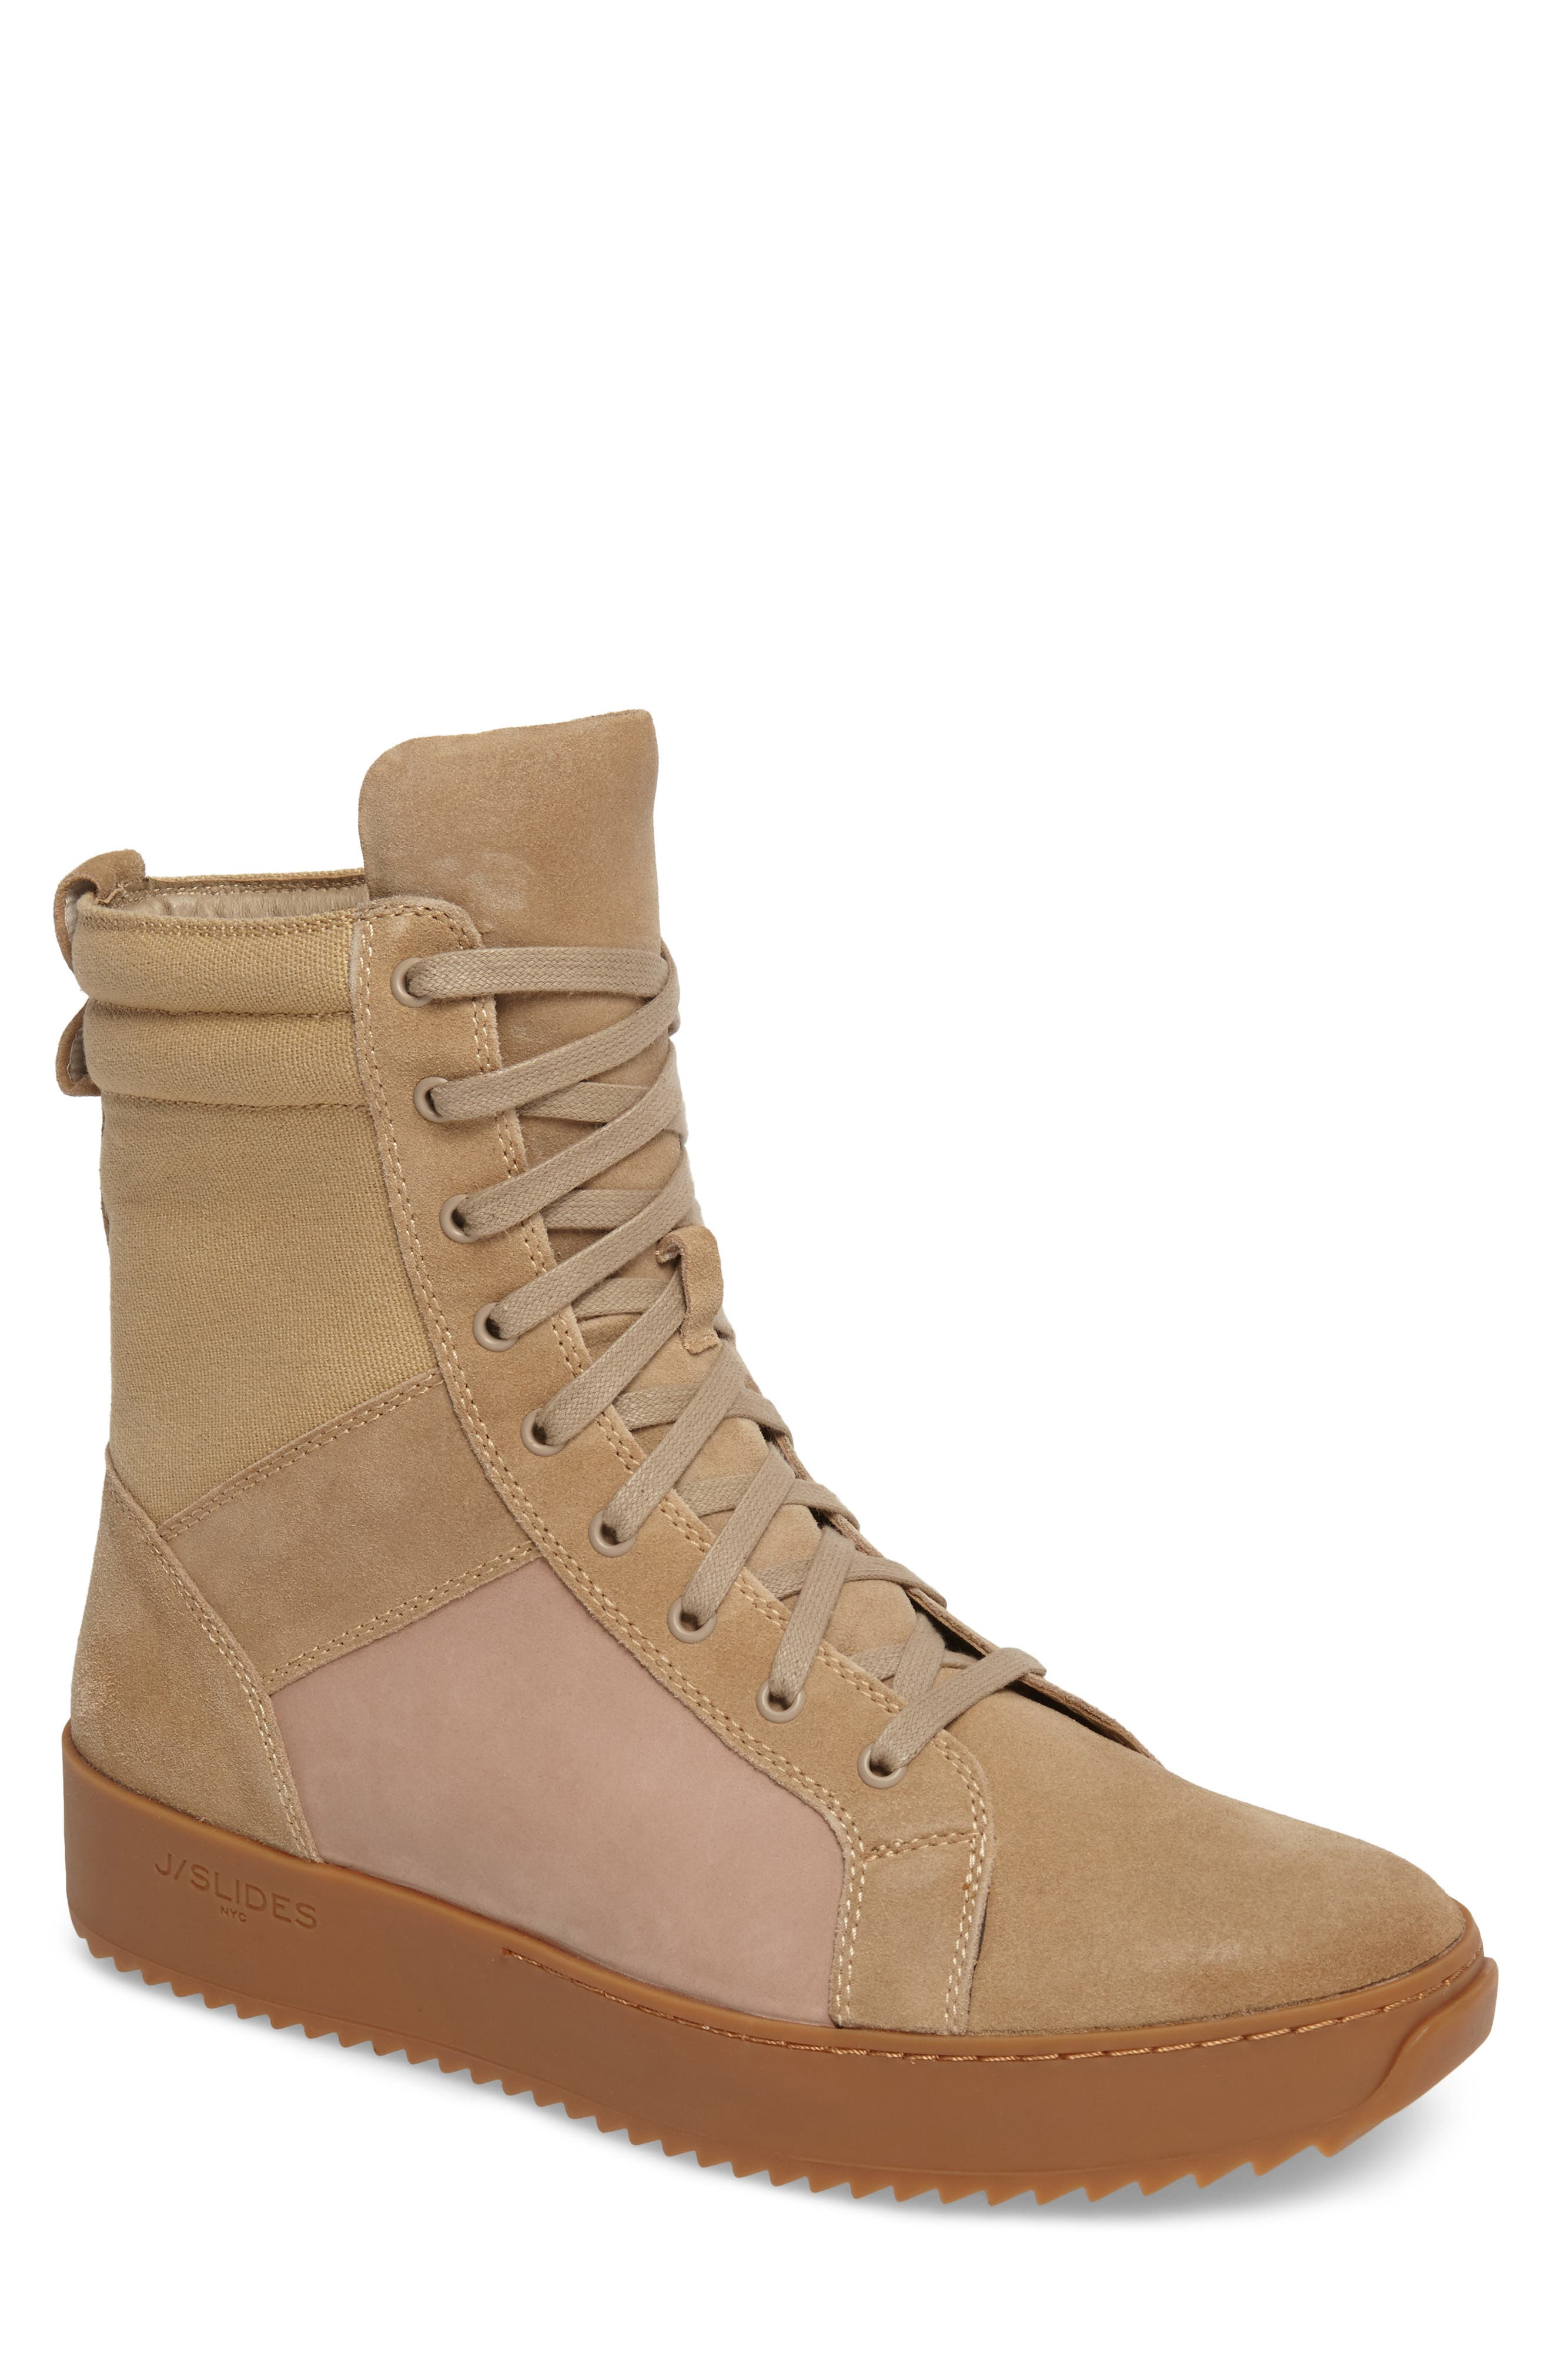 Shane Sneaker,                         Main,                         color, Sand Suede